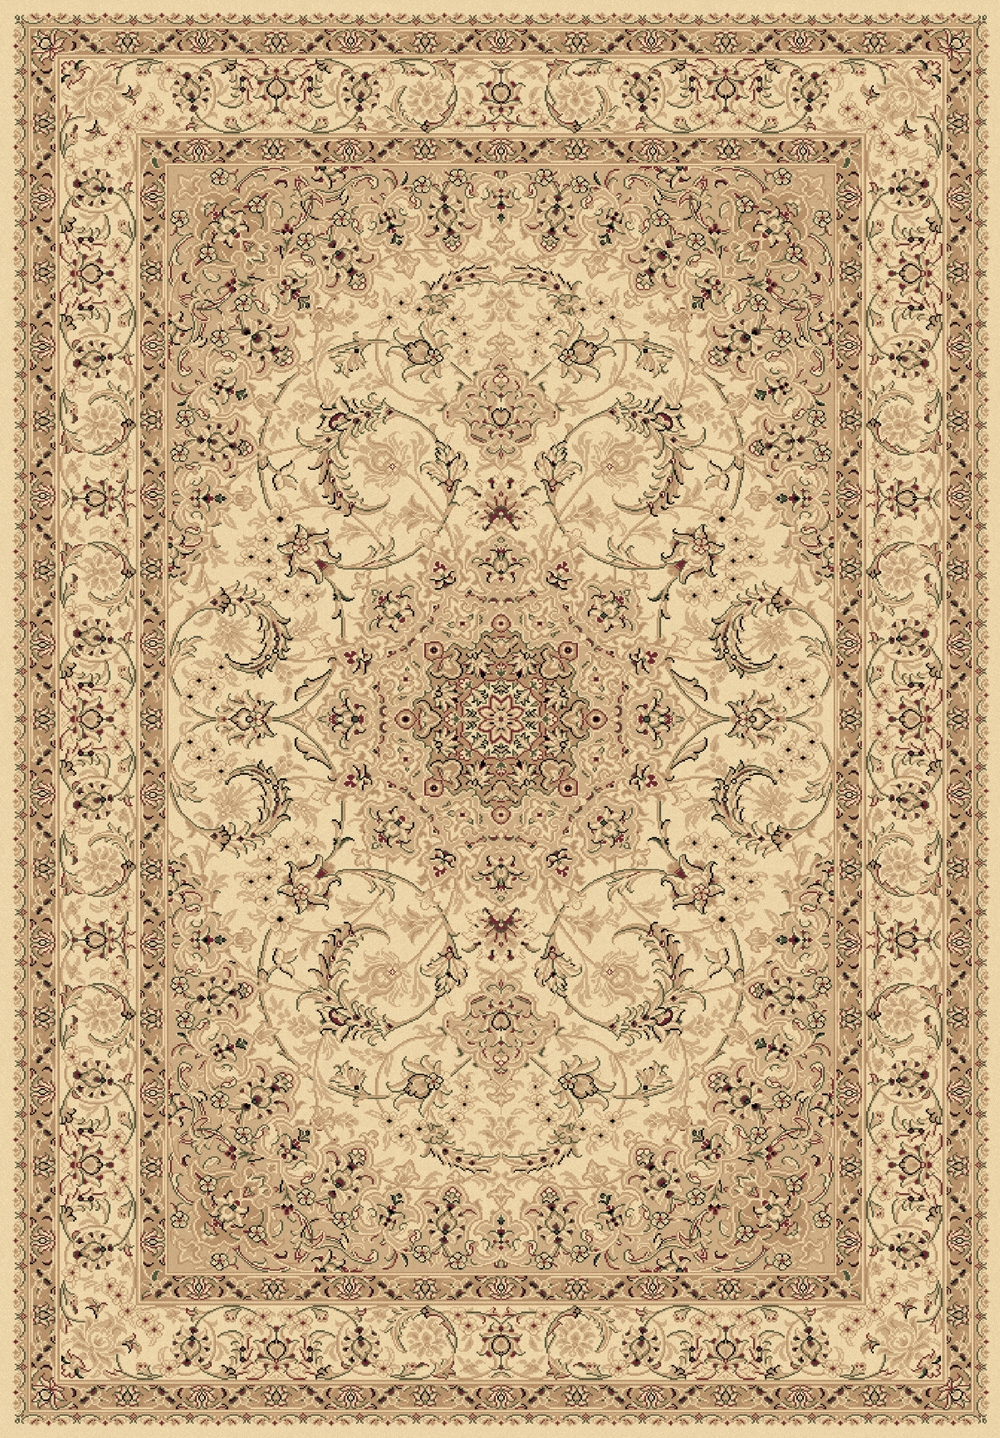 Legacy 58000 100 Ivory Machine Made 100% Polypropylene Made in Turkey Dynamic Rugs